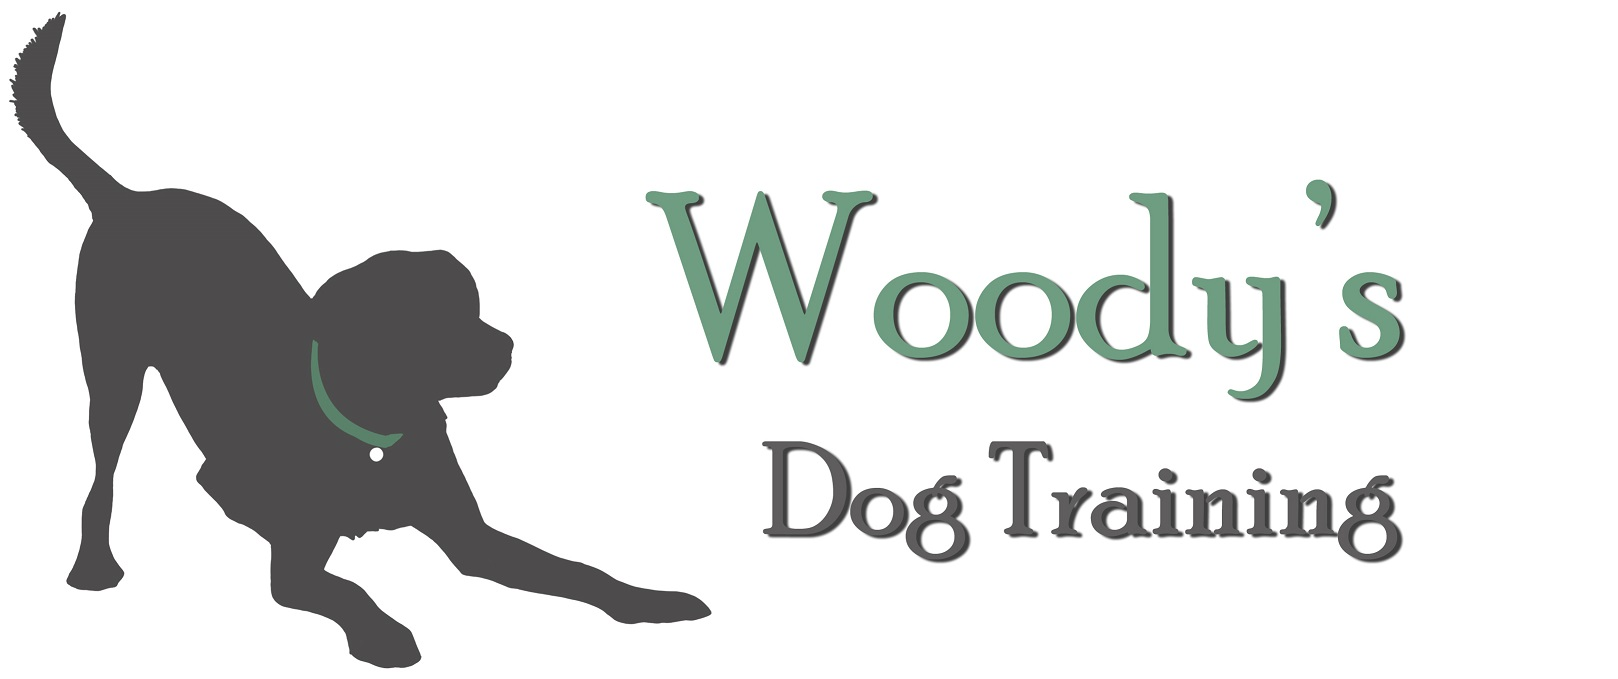 Woodys Dog Training